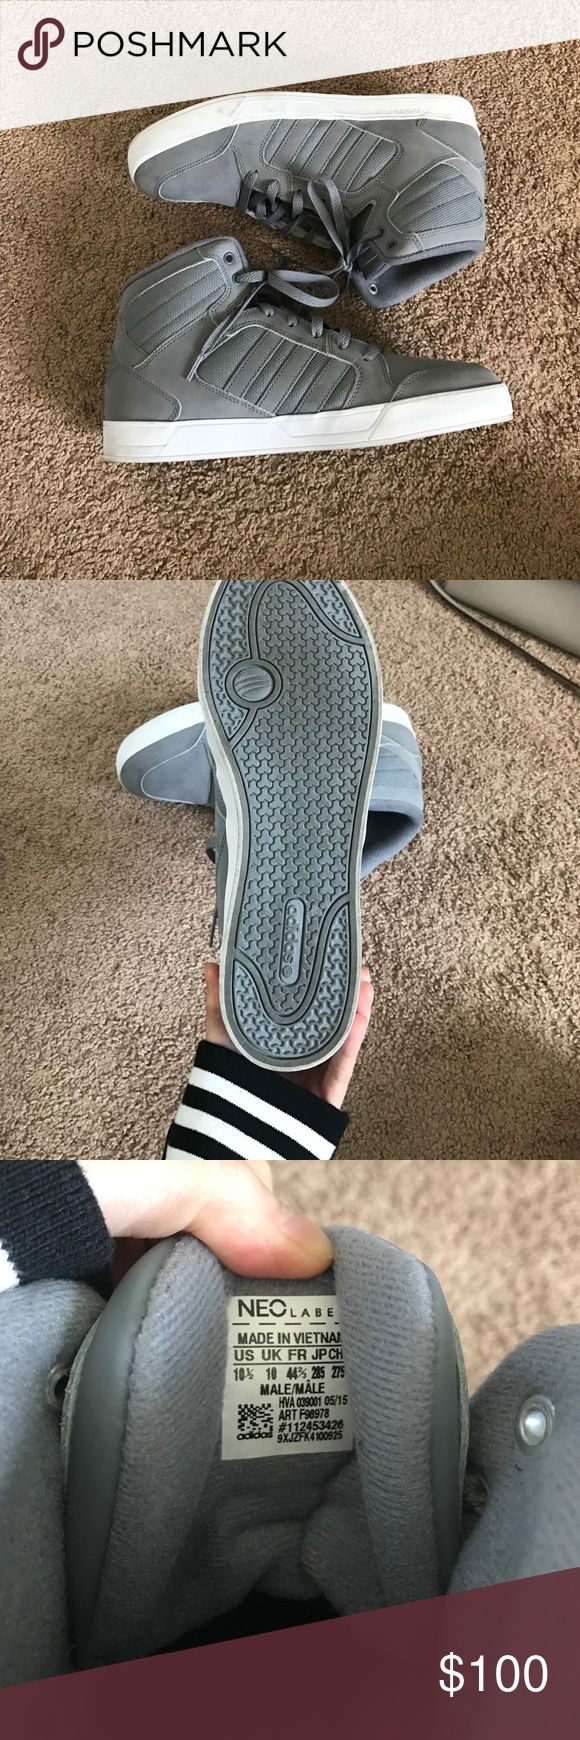 adidas neo gray high top never worn Adidas Shoes Sneakers